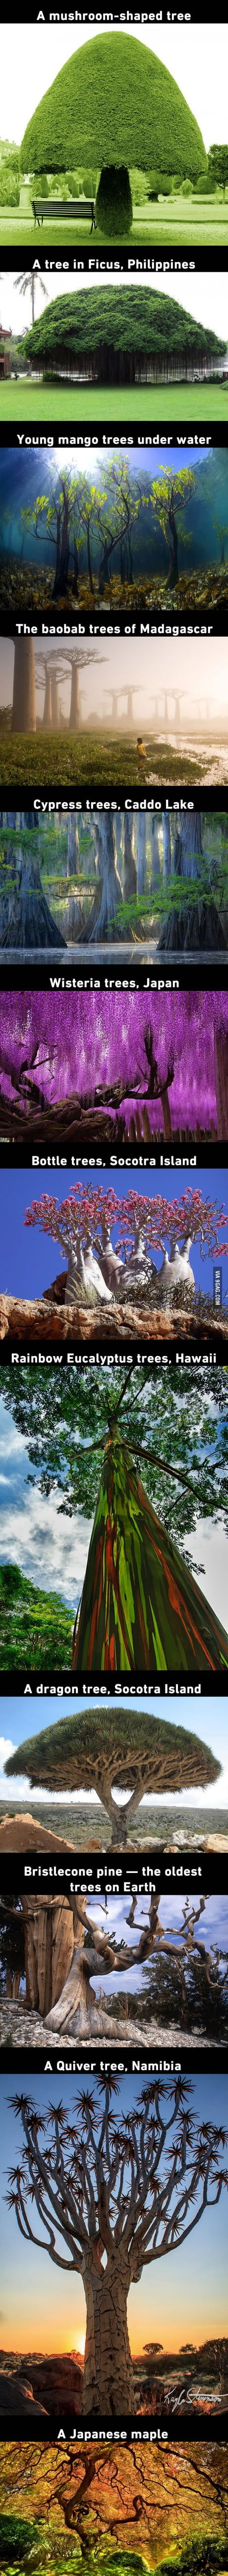 12 Beautiful Trees That You'd Thought They Grow On Pandora From Avatar – Travels & List